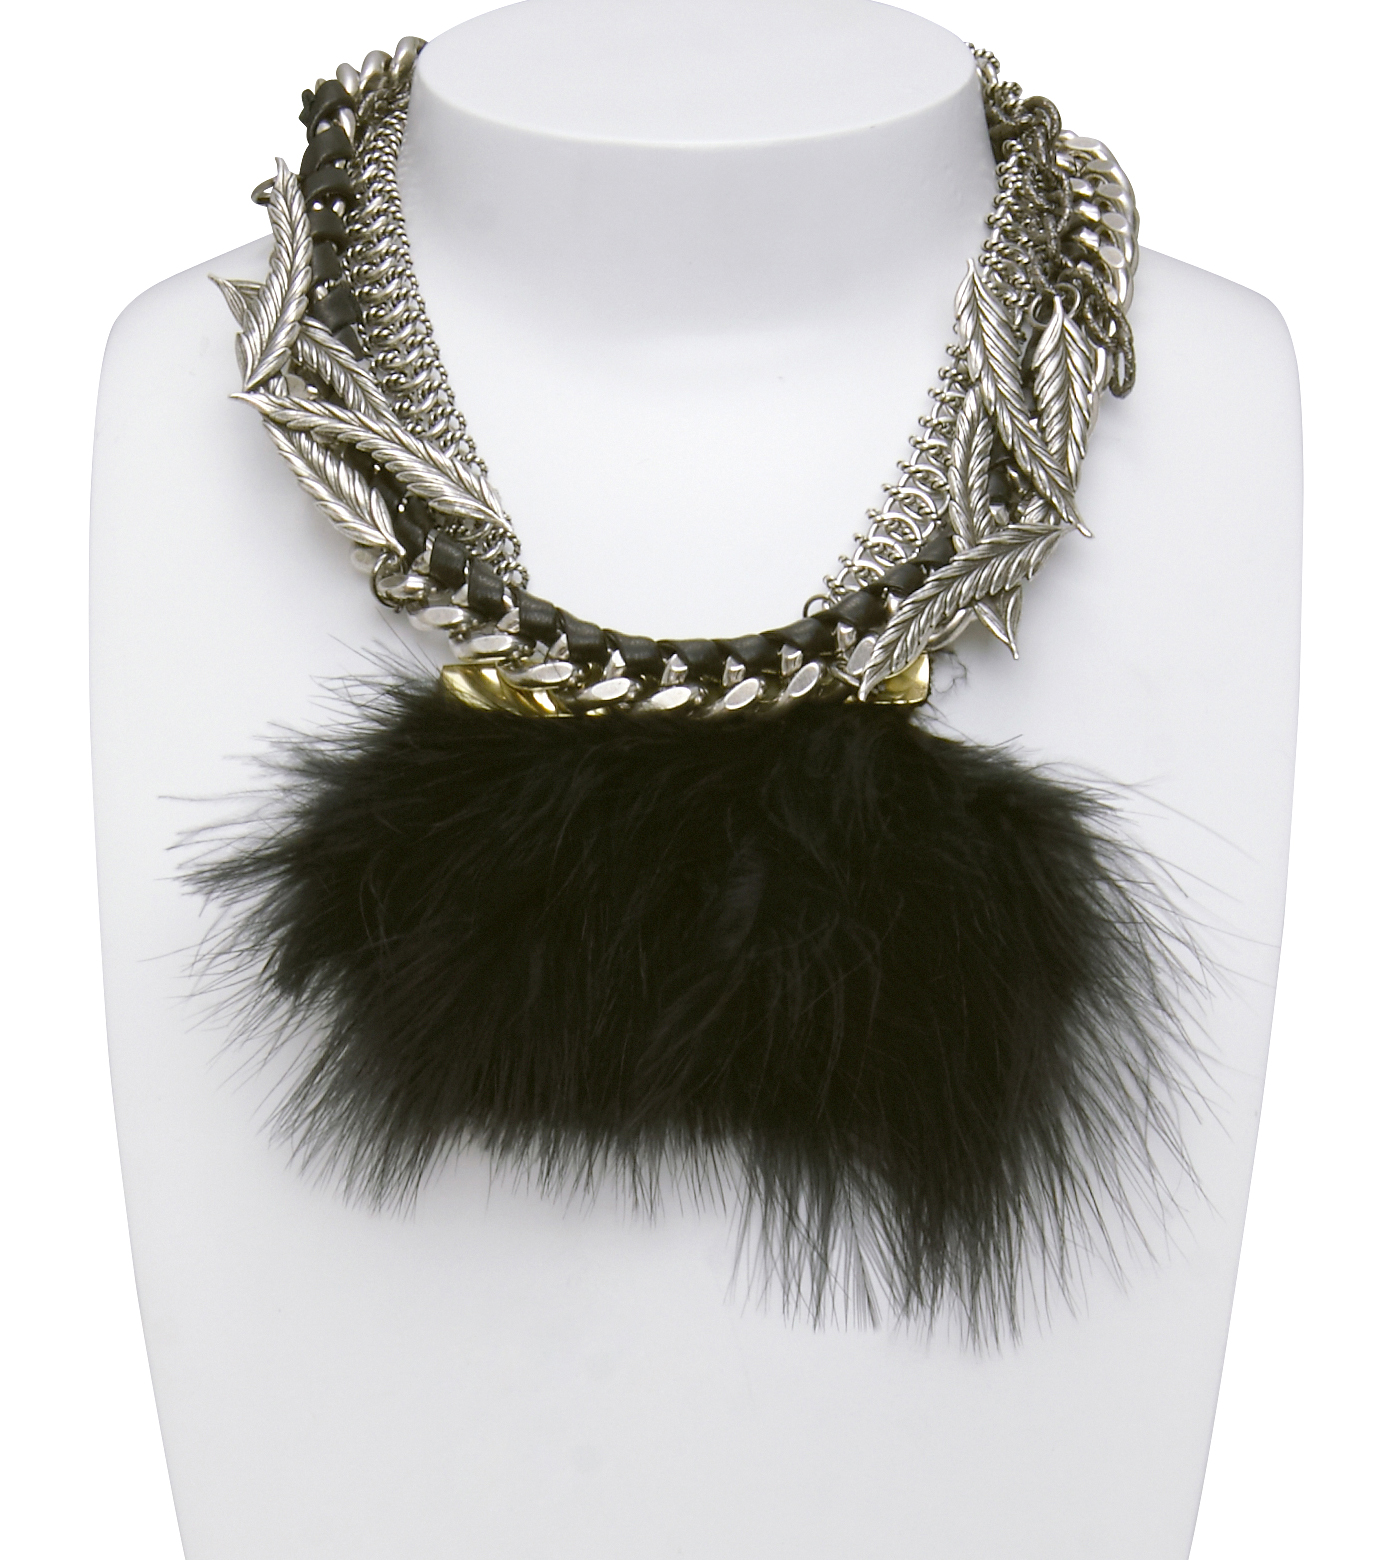 Feather/Leaf Collar-13